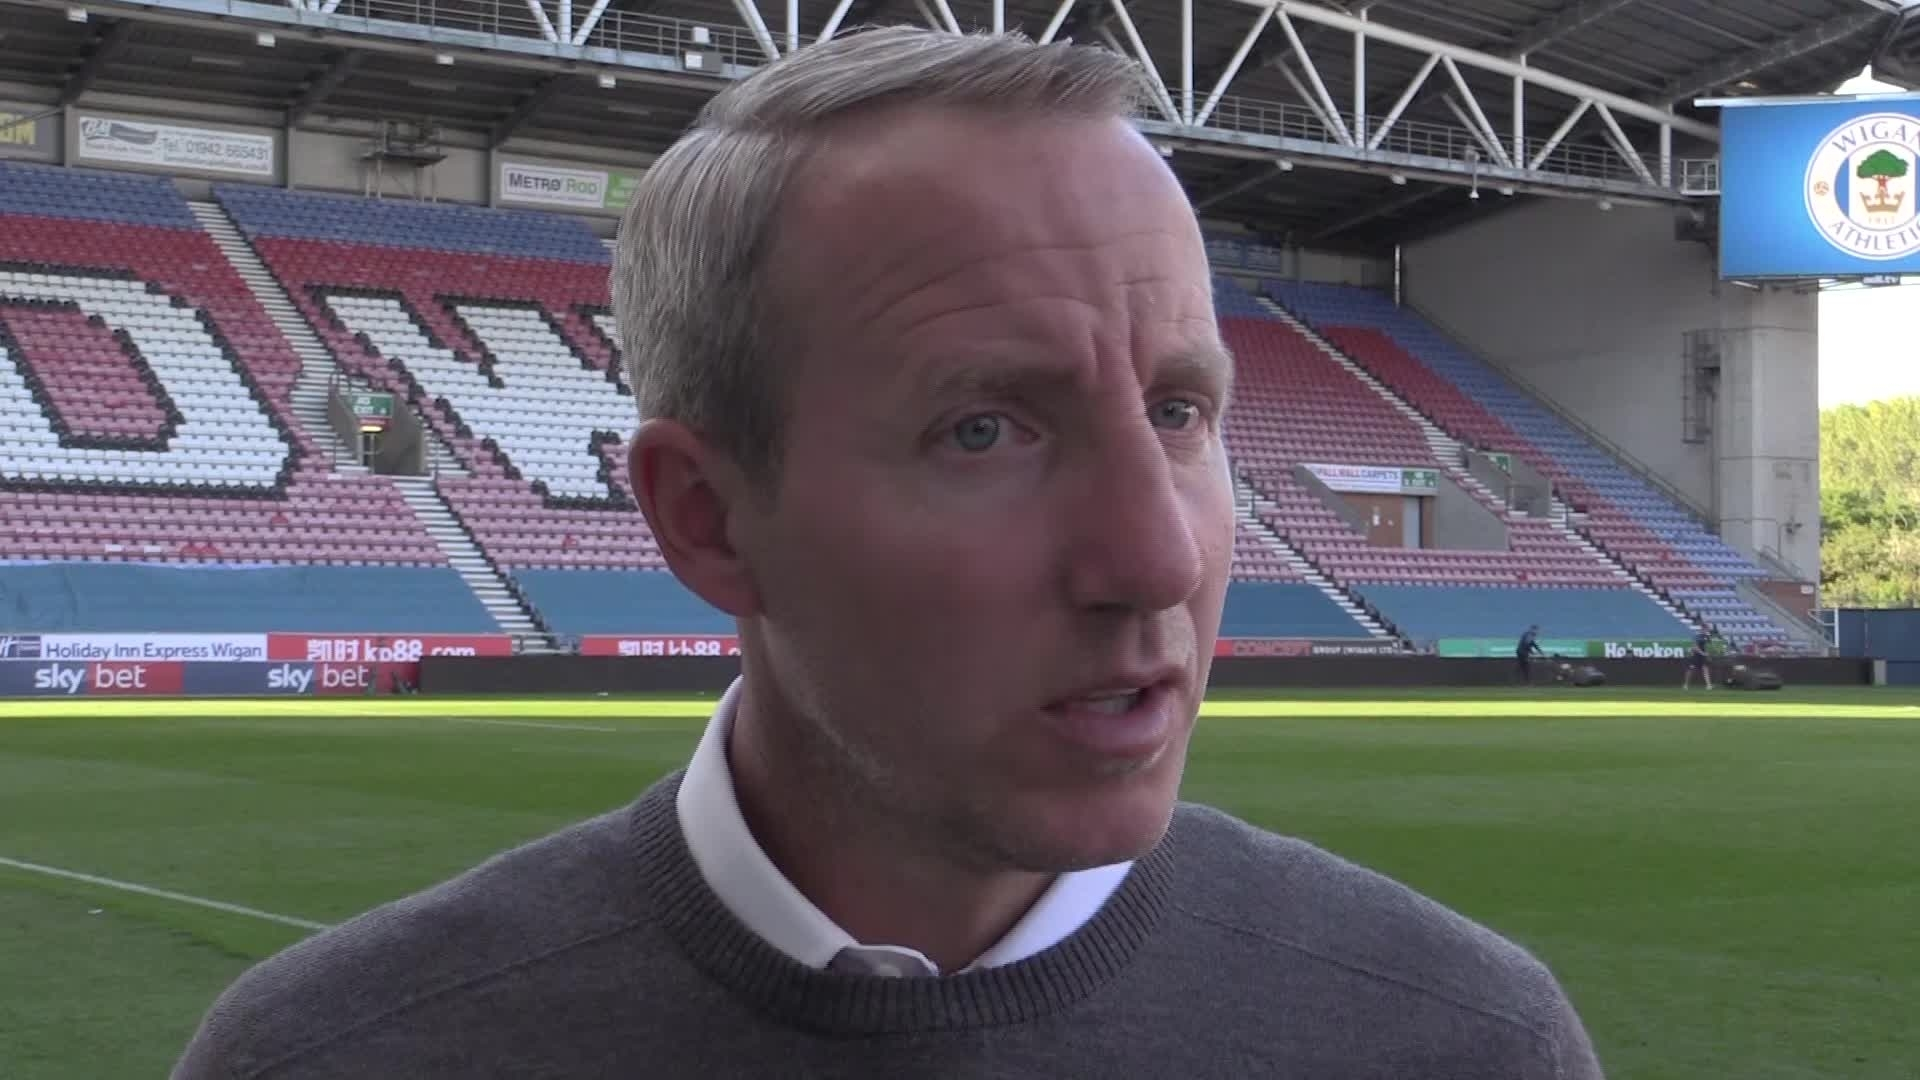 POST-MATCH | Bowyer left disappointed by defeat at Wigan (September 2019)